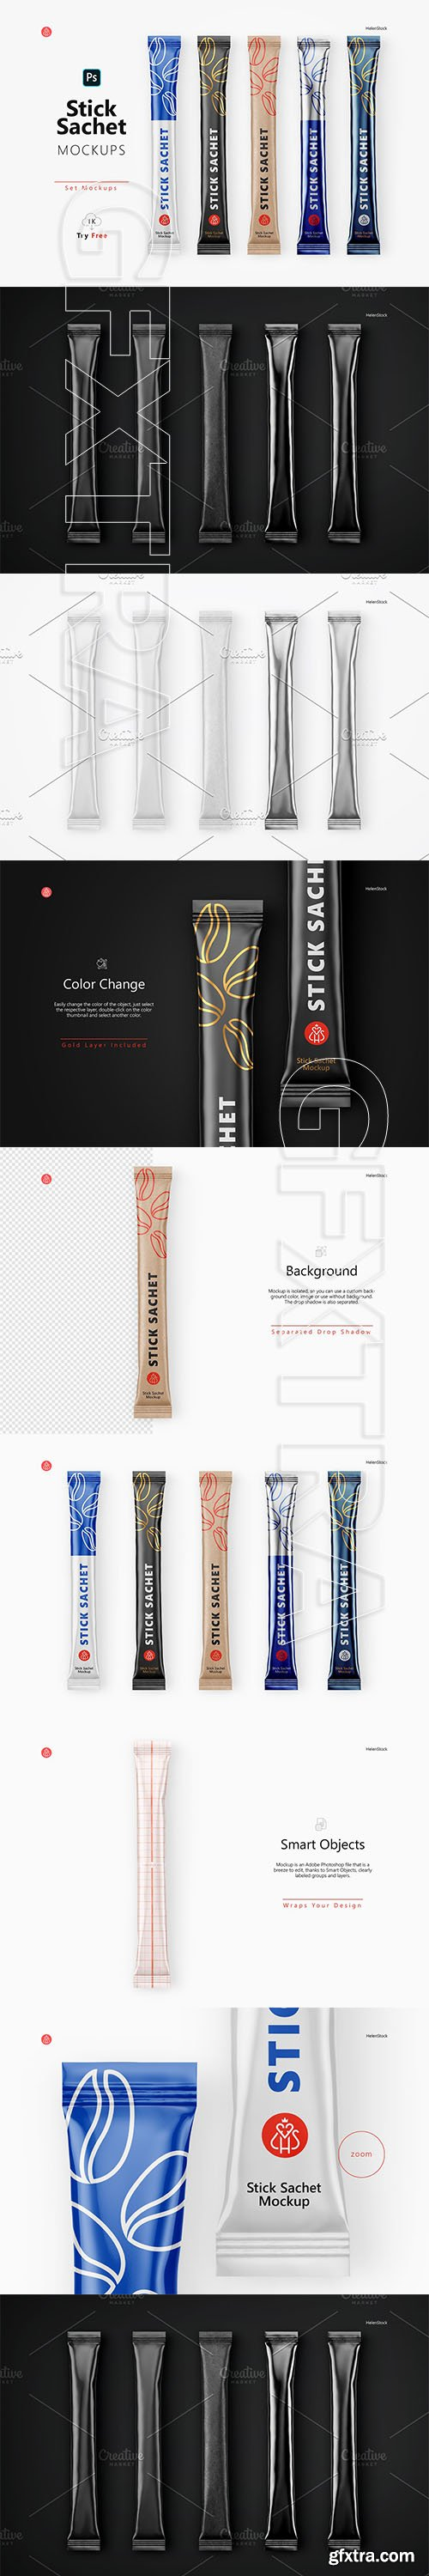 CreativeMarket - Stick Sachet Mockup - Top View 5734220